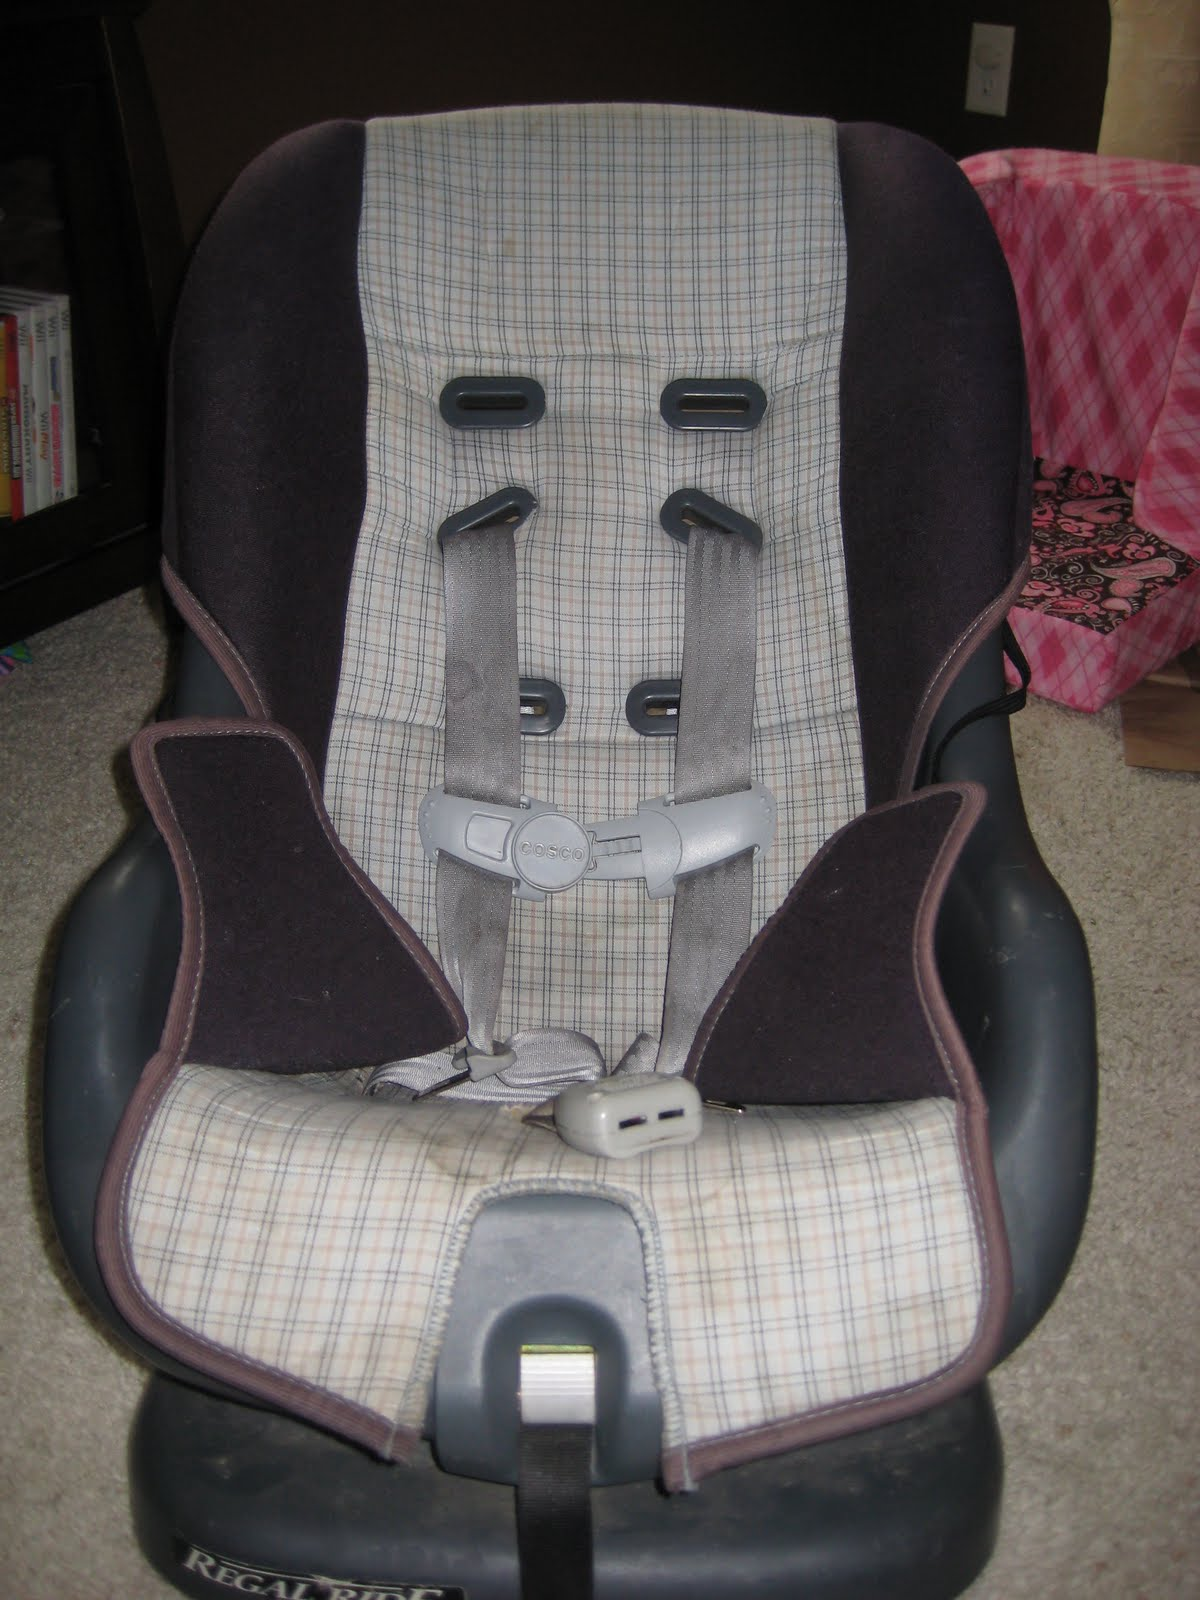 Wondrous Laura Thoughts Car Seat Re Cover Cjindustries Chair Design For Home Cjindustriesco